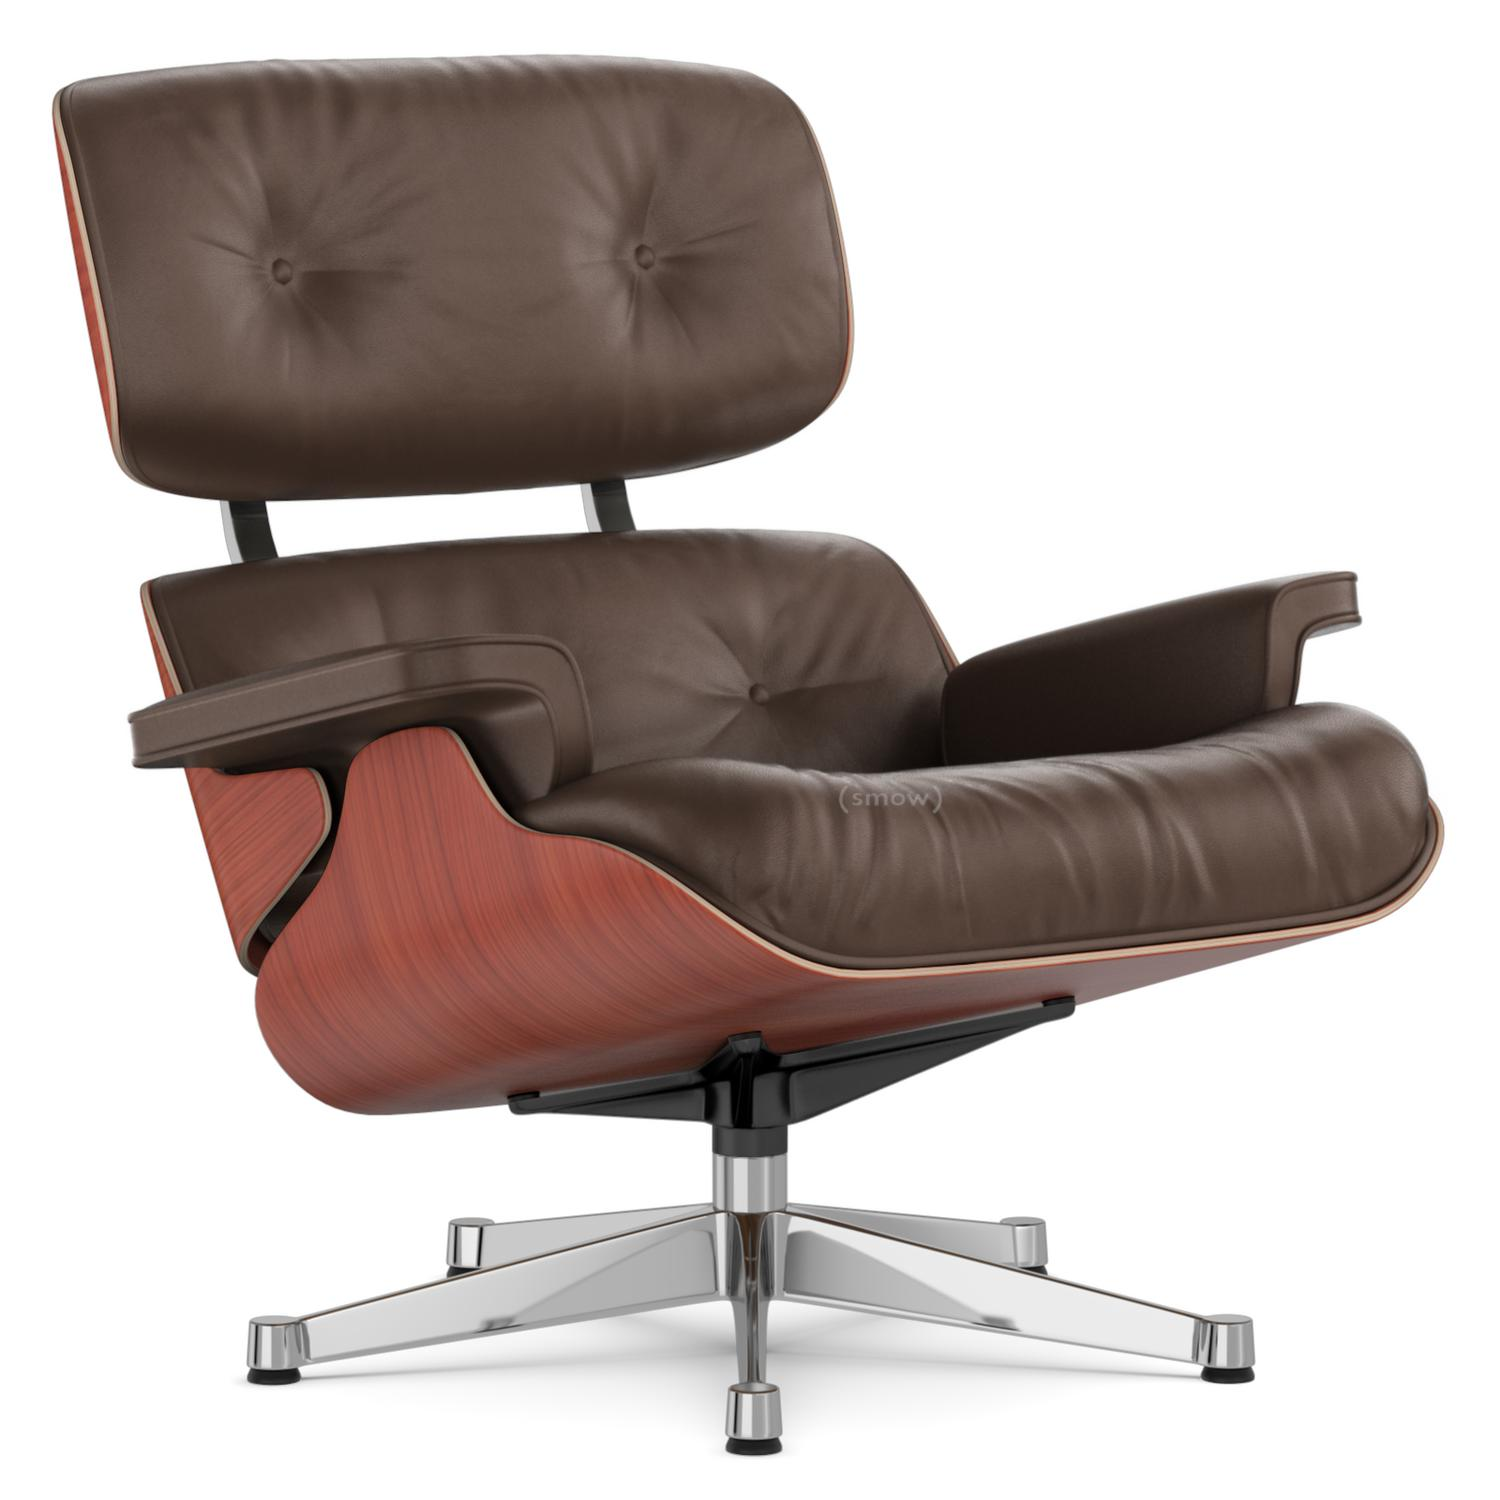 Vitra Lounge Chair Cherry Brown 89 cm Aluminium chrome plated